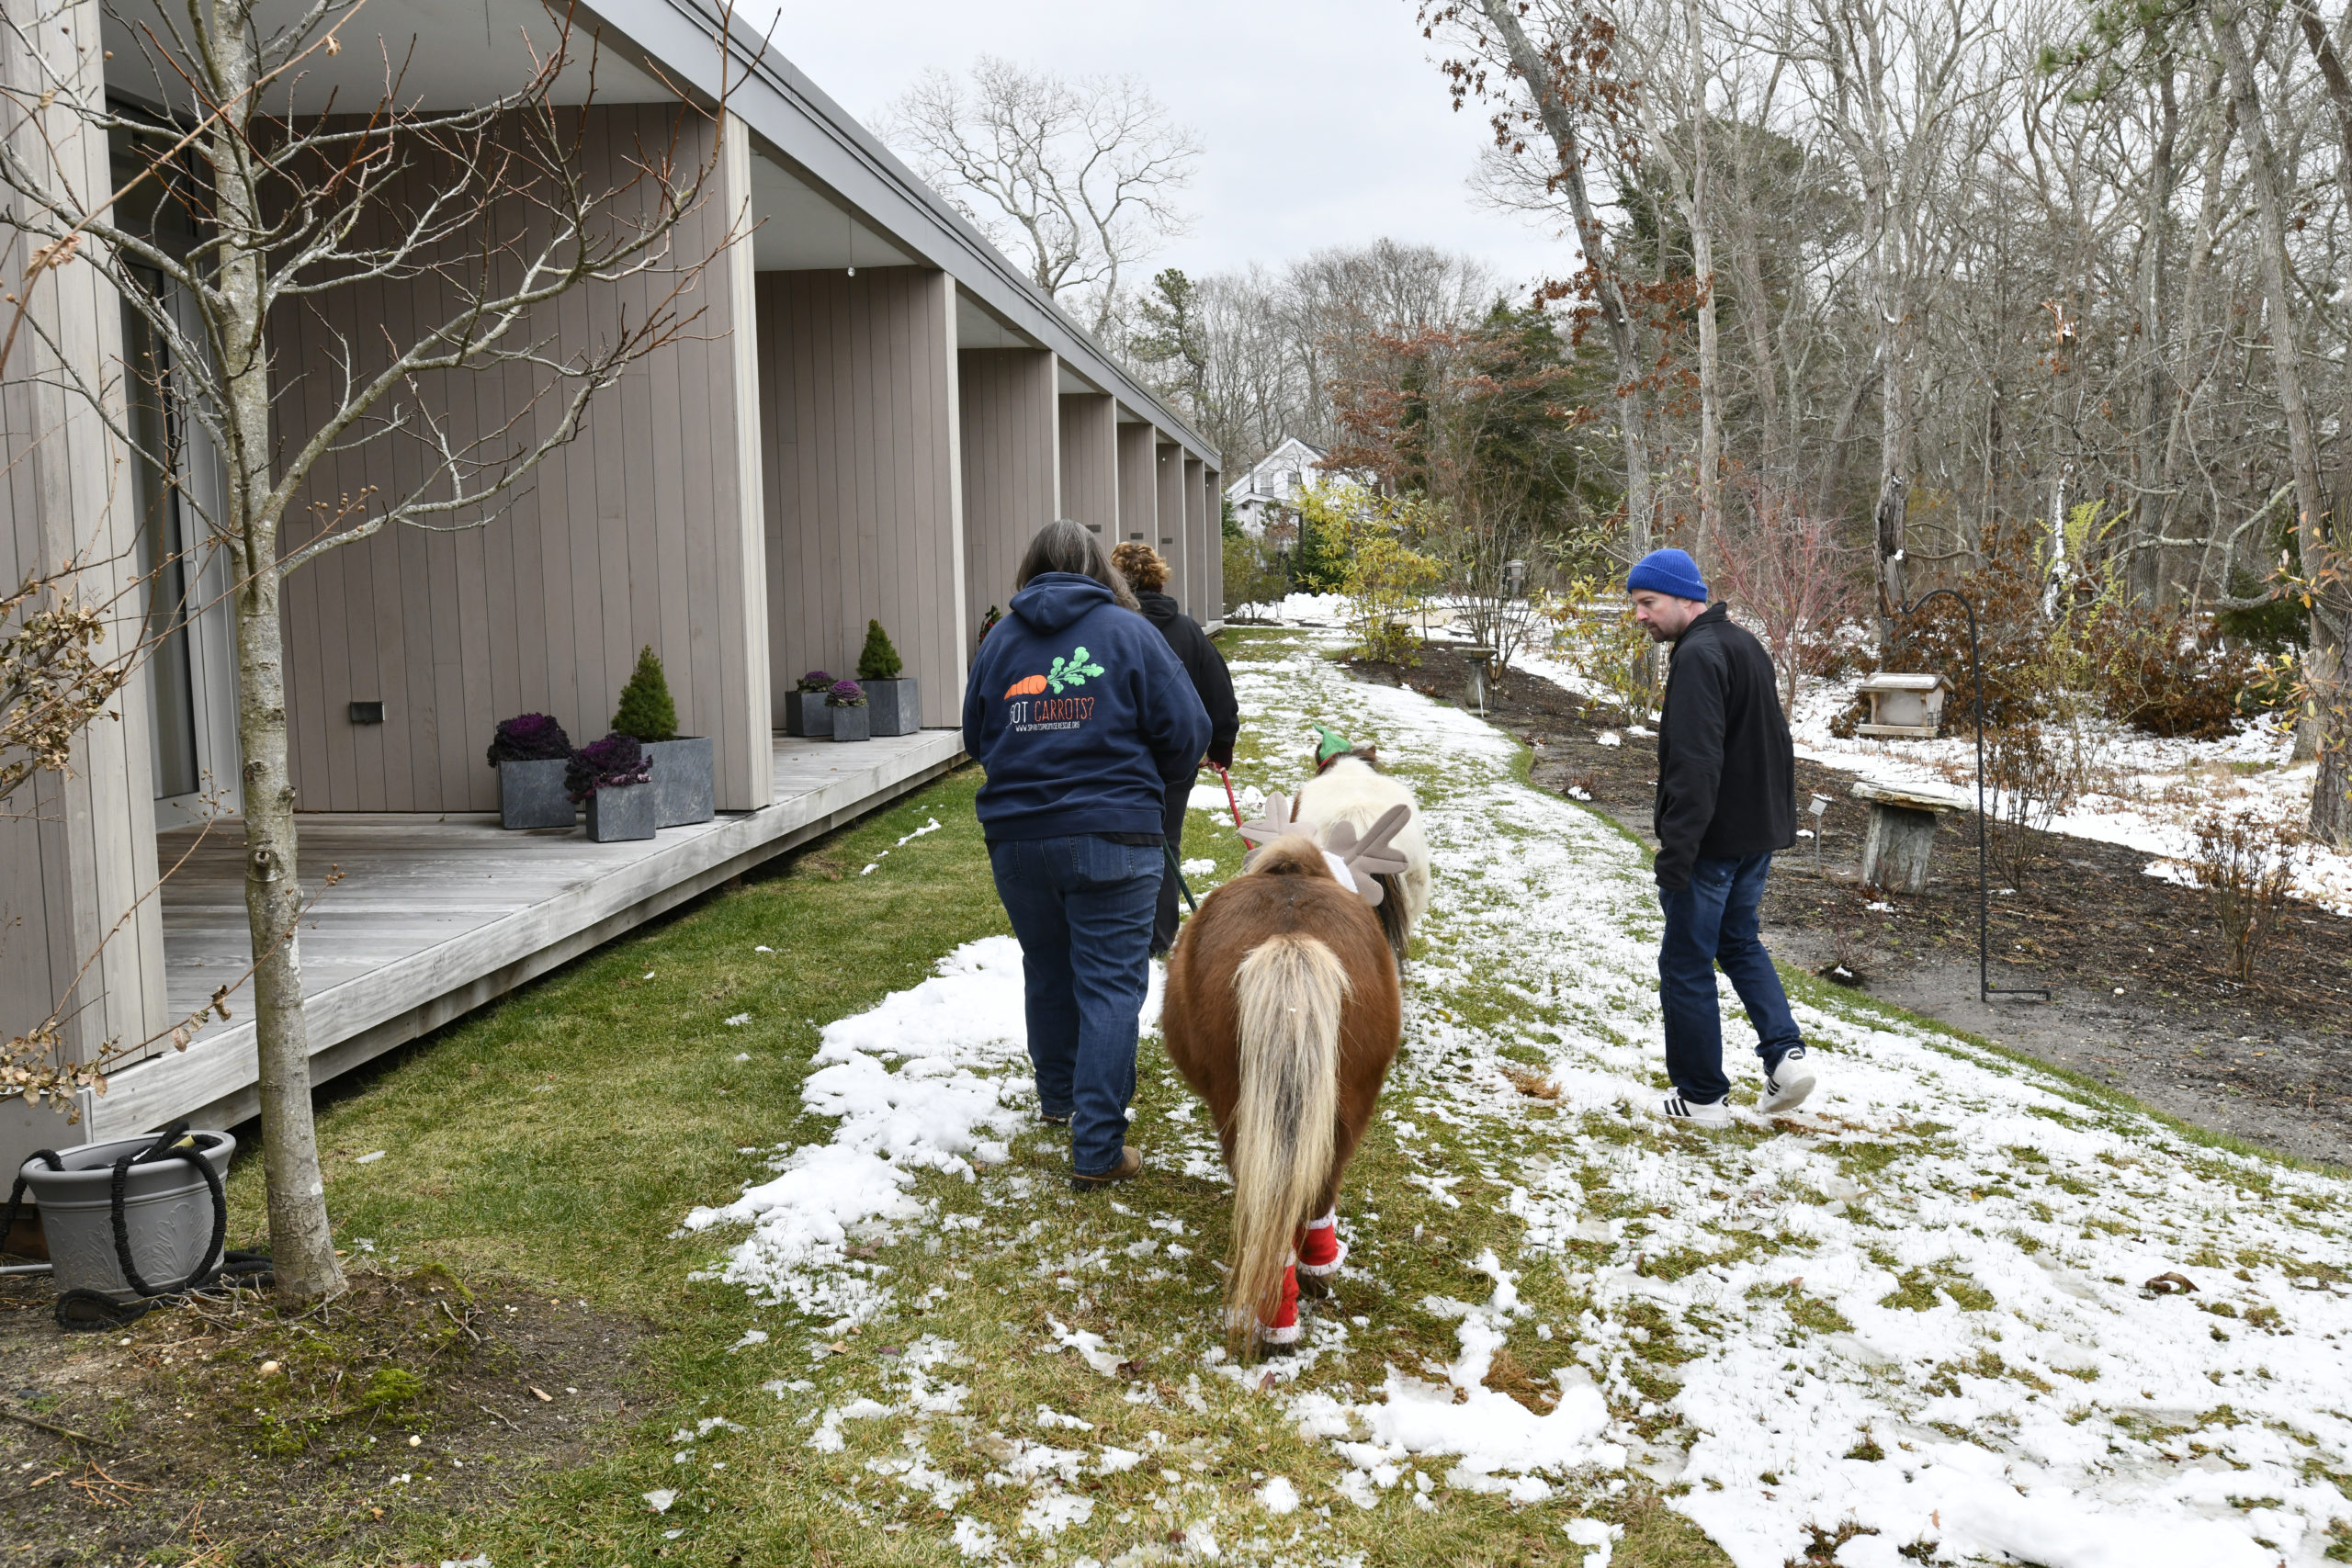 Mini horses Sweetie and Christmas from Spirit's Promise Equine Rescue and Rehabilitation Program in Riverhead paid a visit to Daniel Byrne at the East End Hospice Kanas Center for Hospice Care in Westhampton Beach last week. DANA SHAW